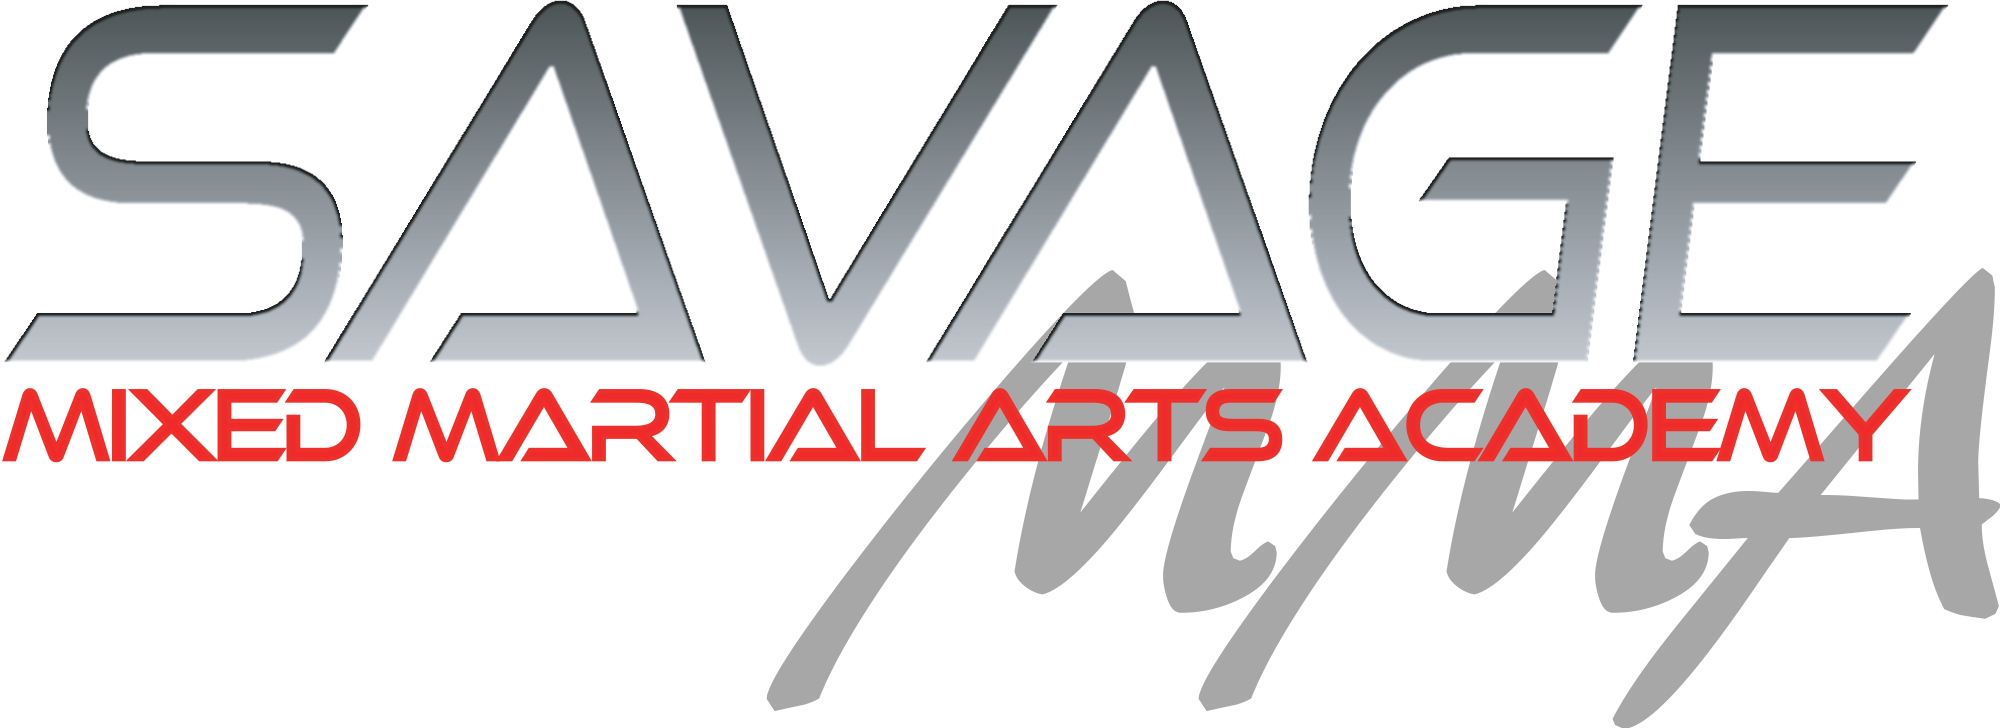 Savage MMA Academy Blackpool